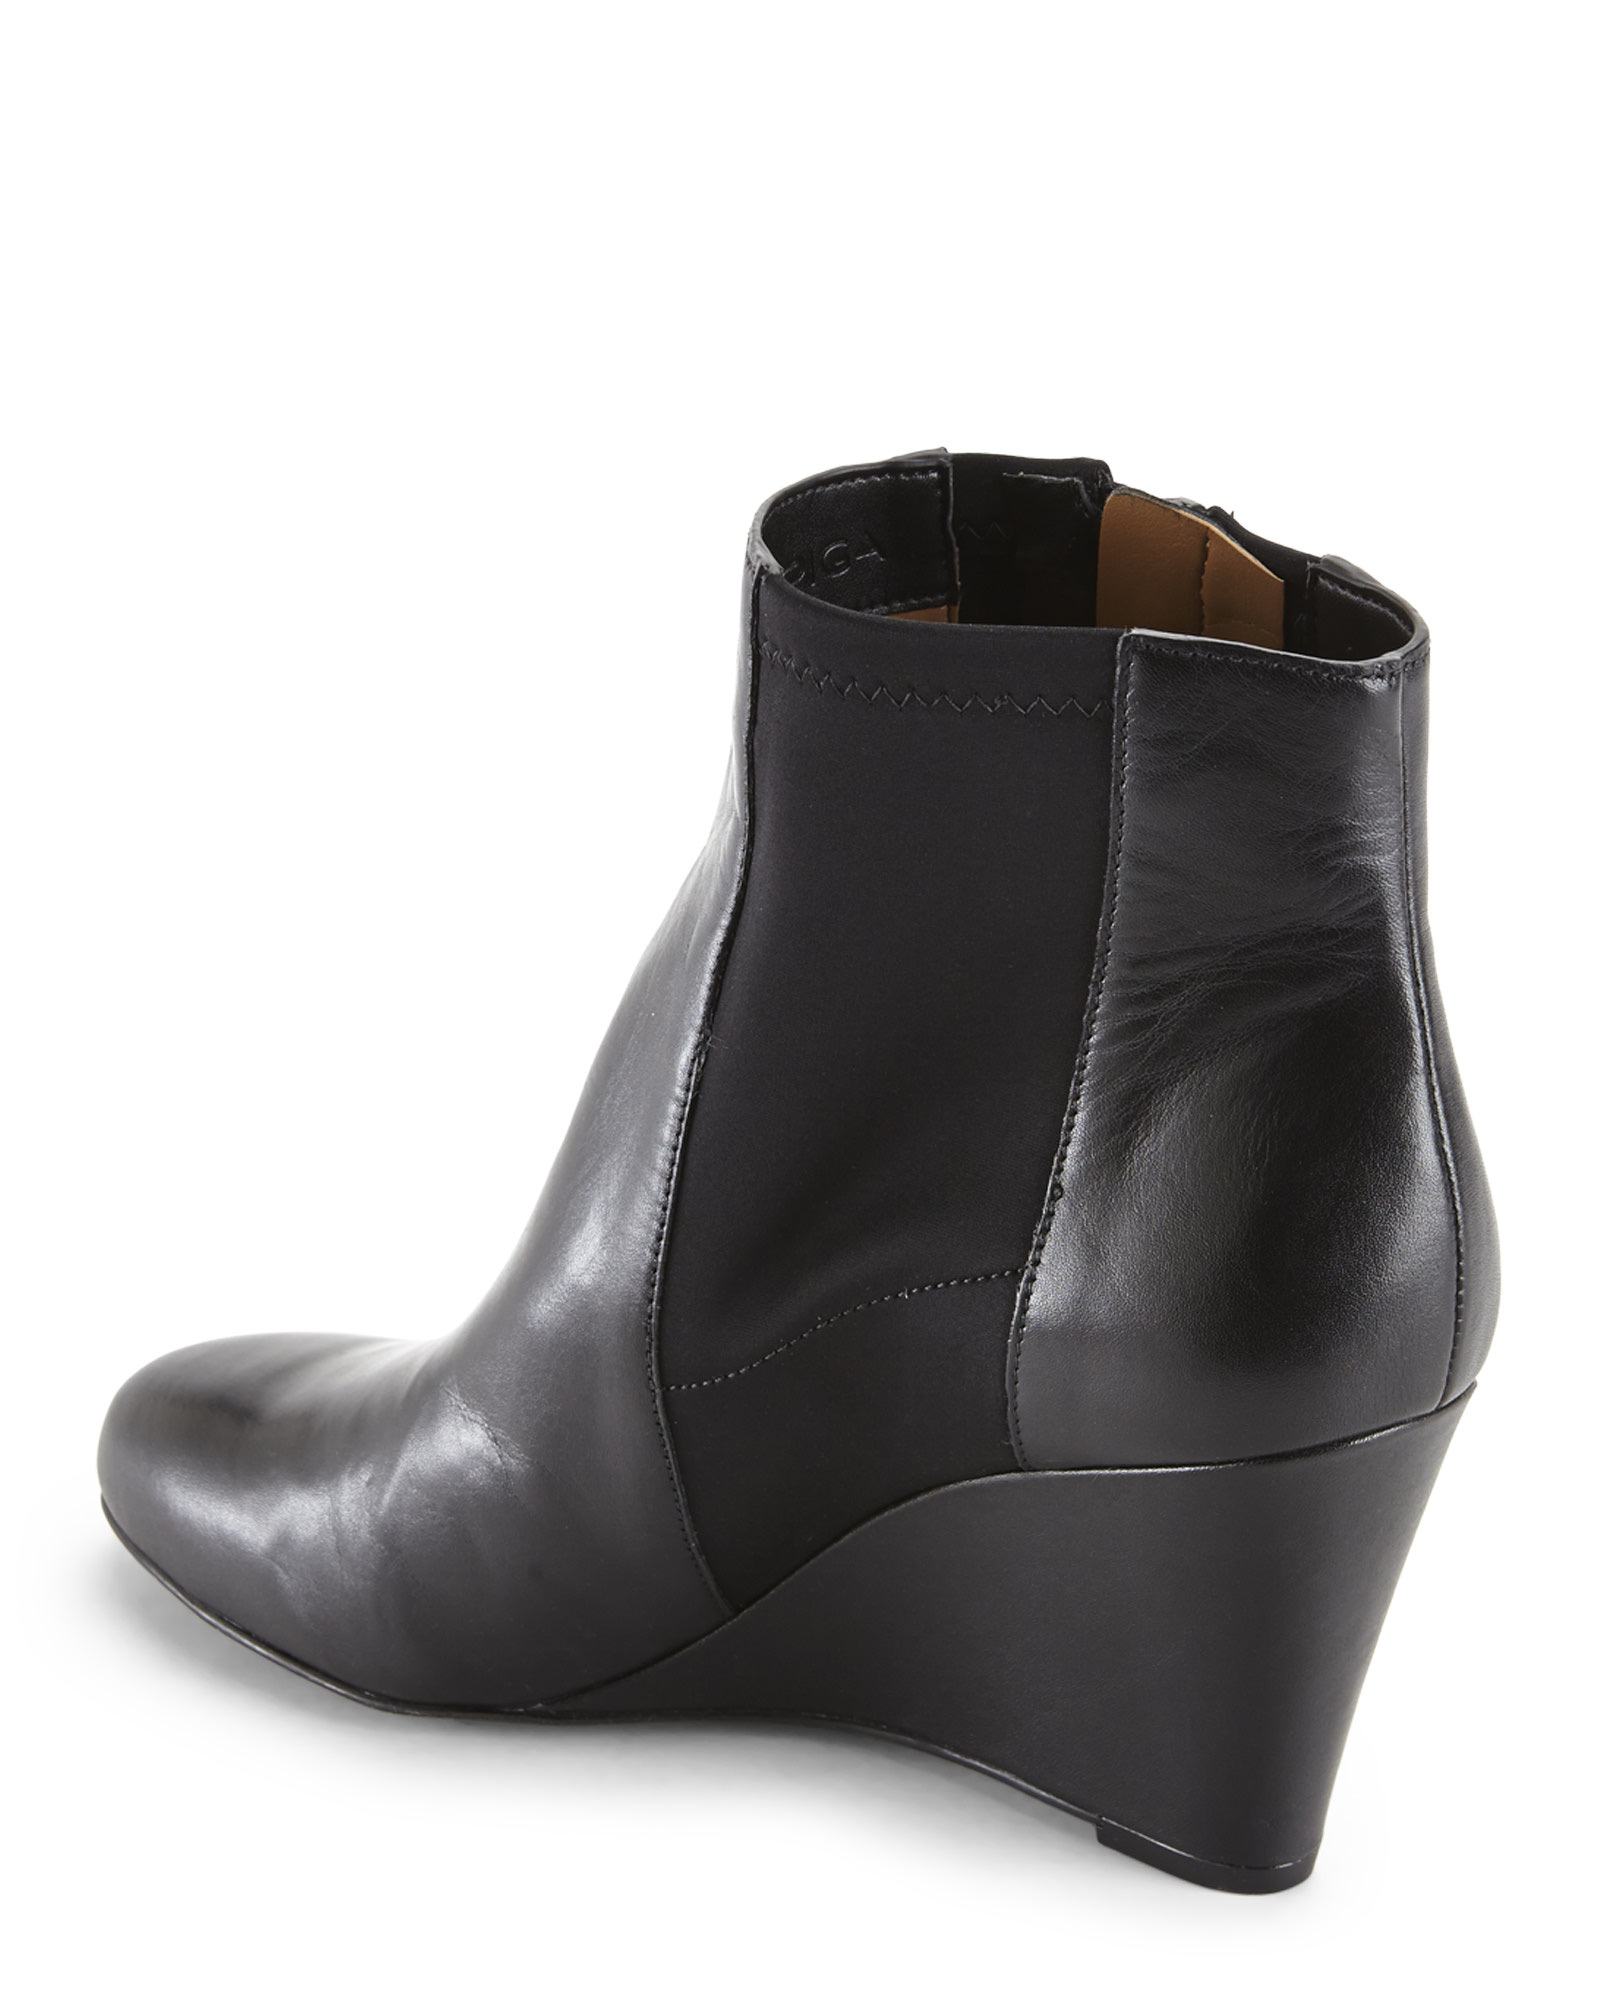 via spiga black filomena wedge boots in black lyst